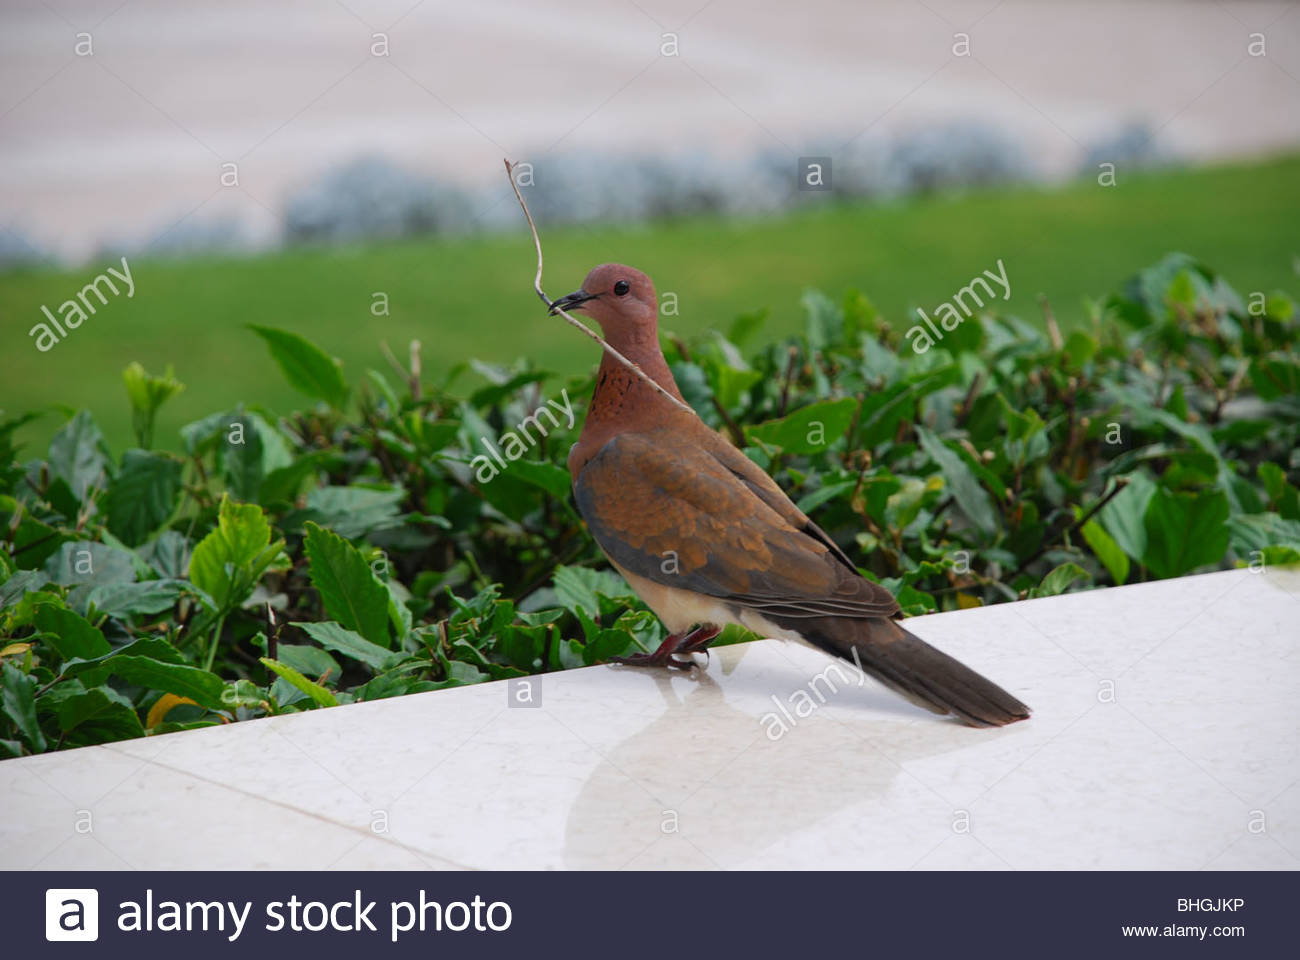 Pigeon with twig in mouth - Stock Image